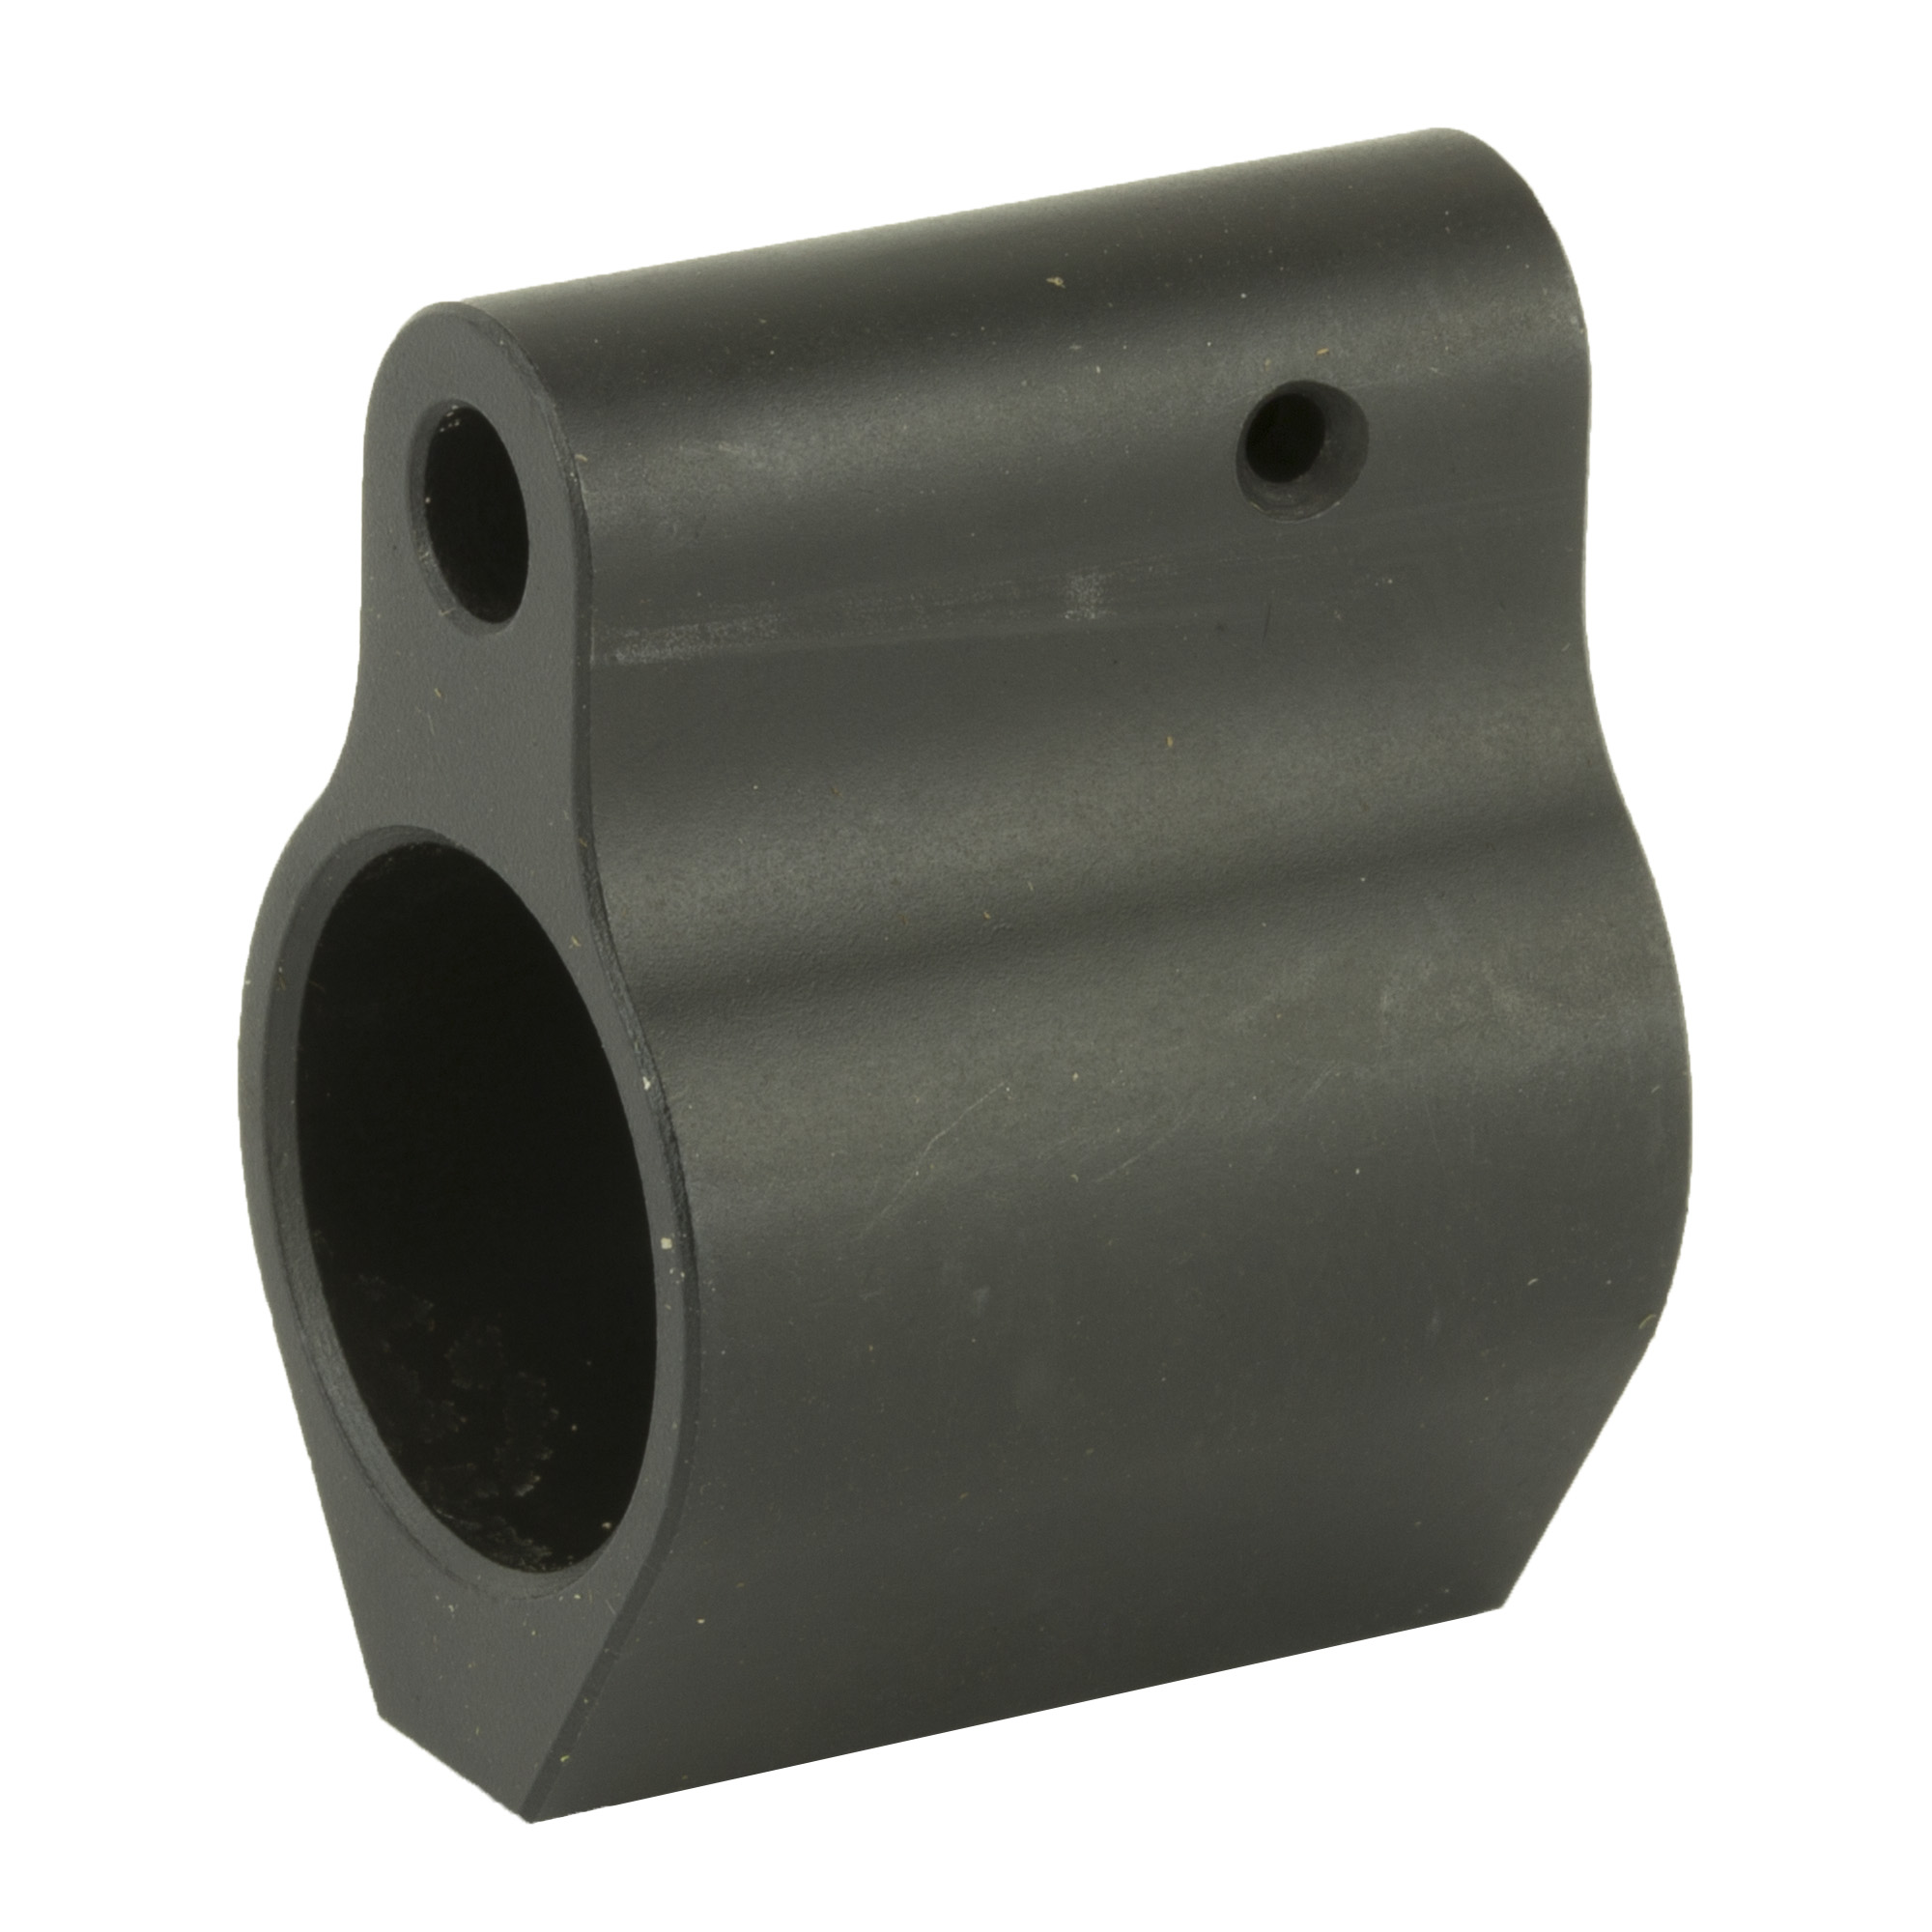 High quality low-profile AR-15 double set screw gas block. Made of Billet Steel and Black Nitride Coated.